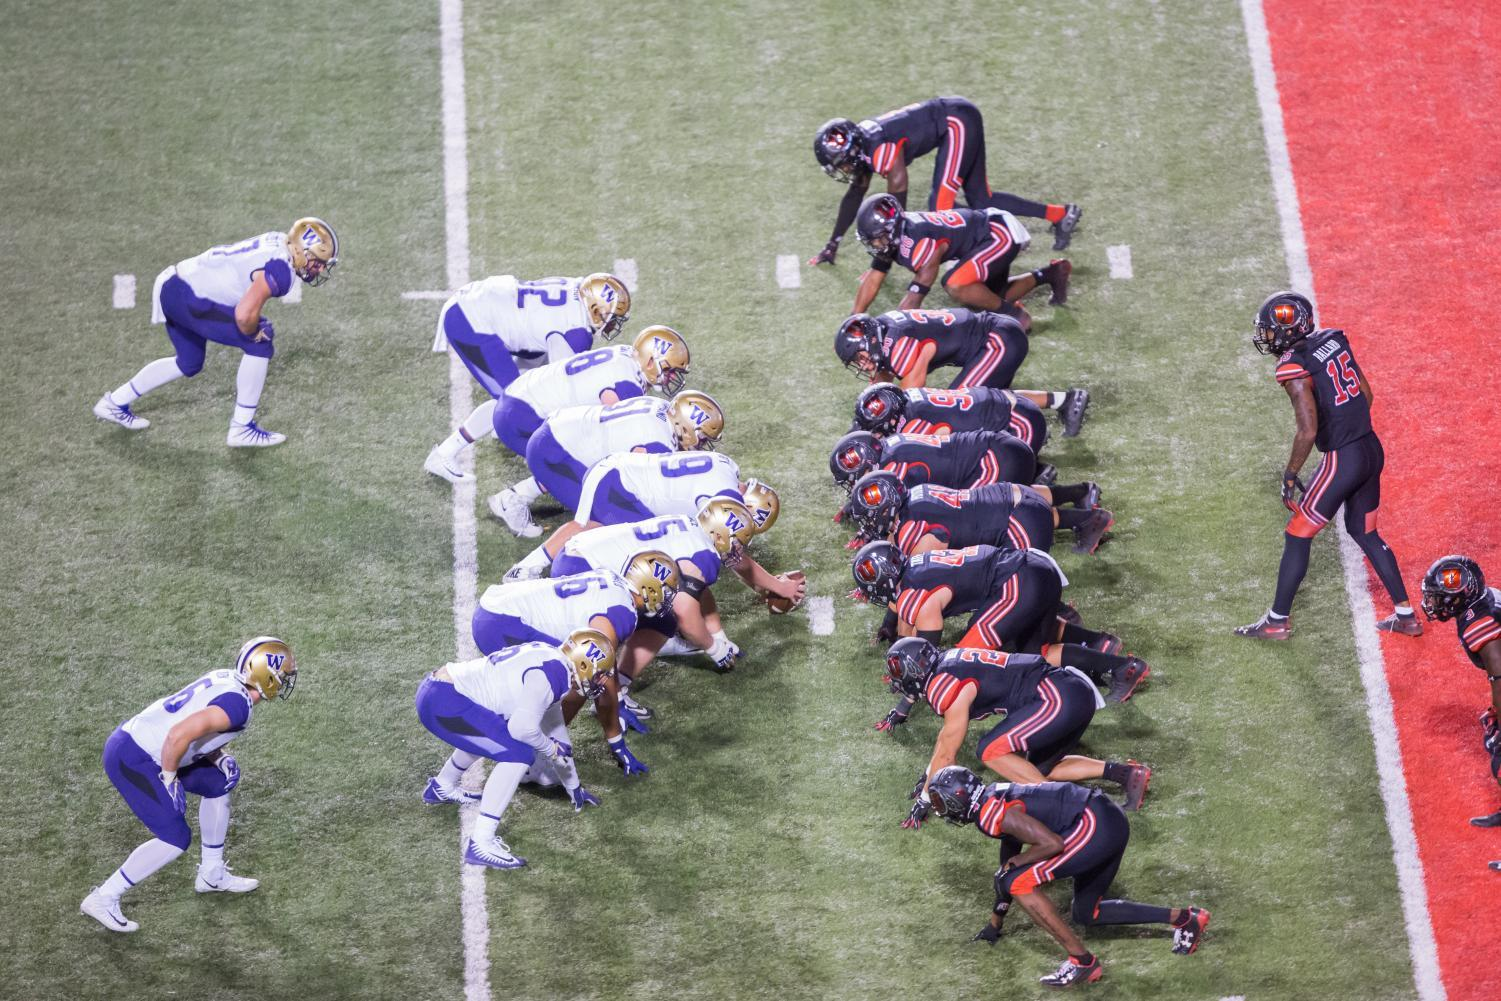 Both Univeristy of Utah and University of Washington line up prior to a snap in an NCAA football game vs. Washington at Rice-Eccles Stadium in Salt Lake City, UT on Saturday Sept. 15, 2018. (Photo by Curtis Lin | Daily Utah Chronicle)